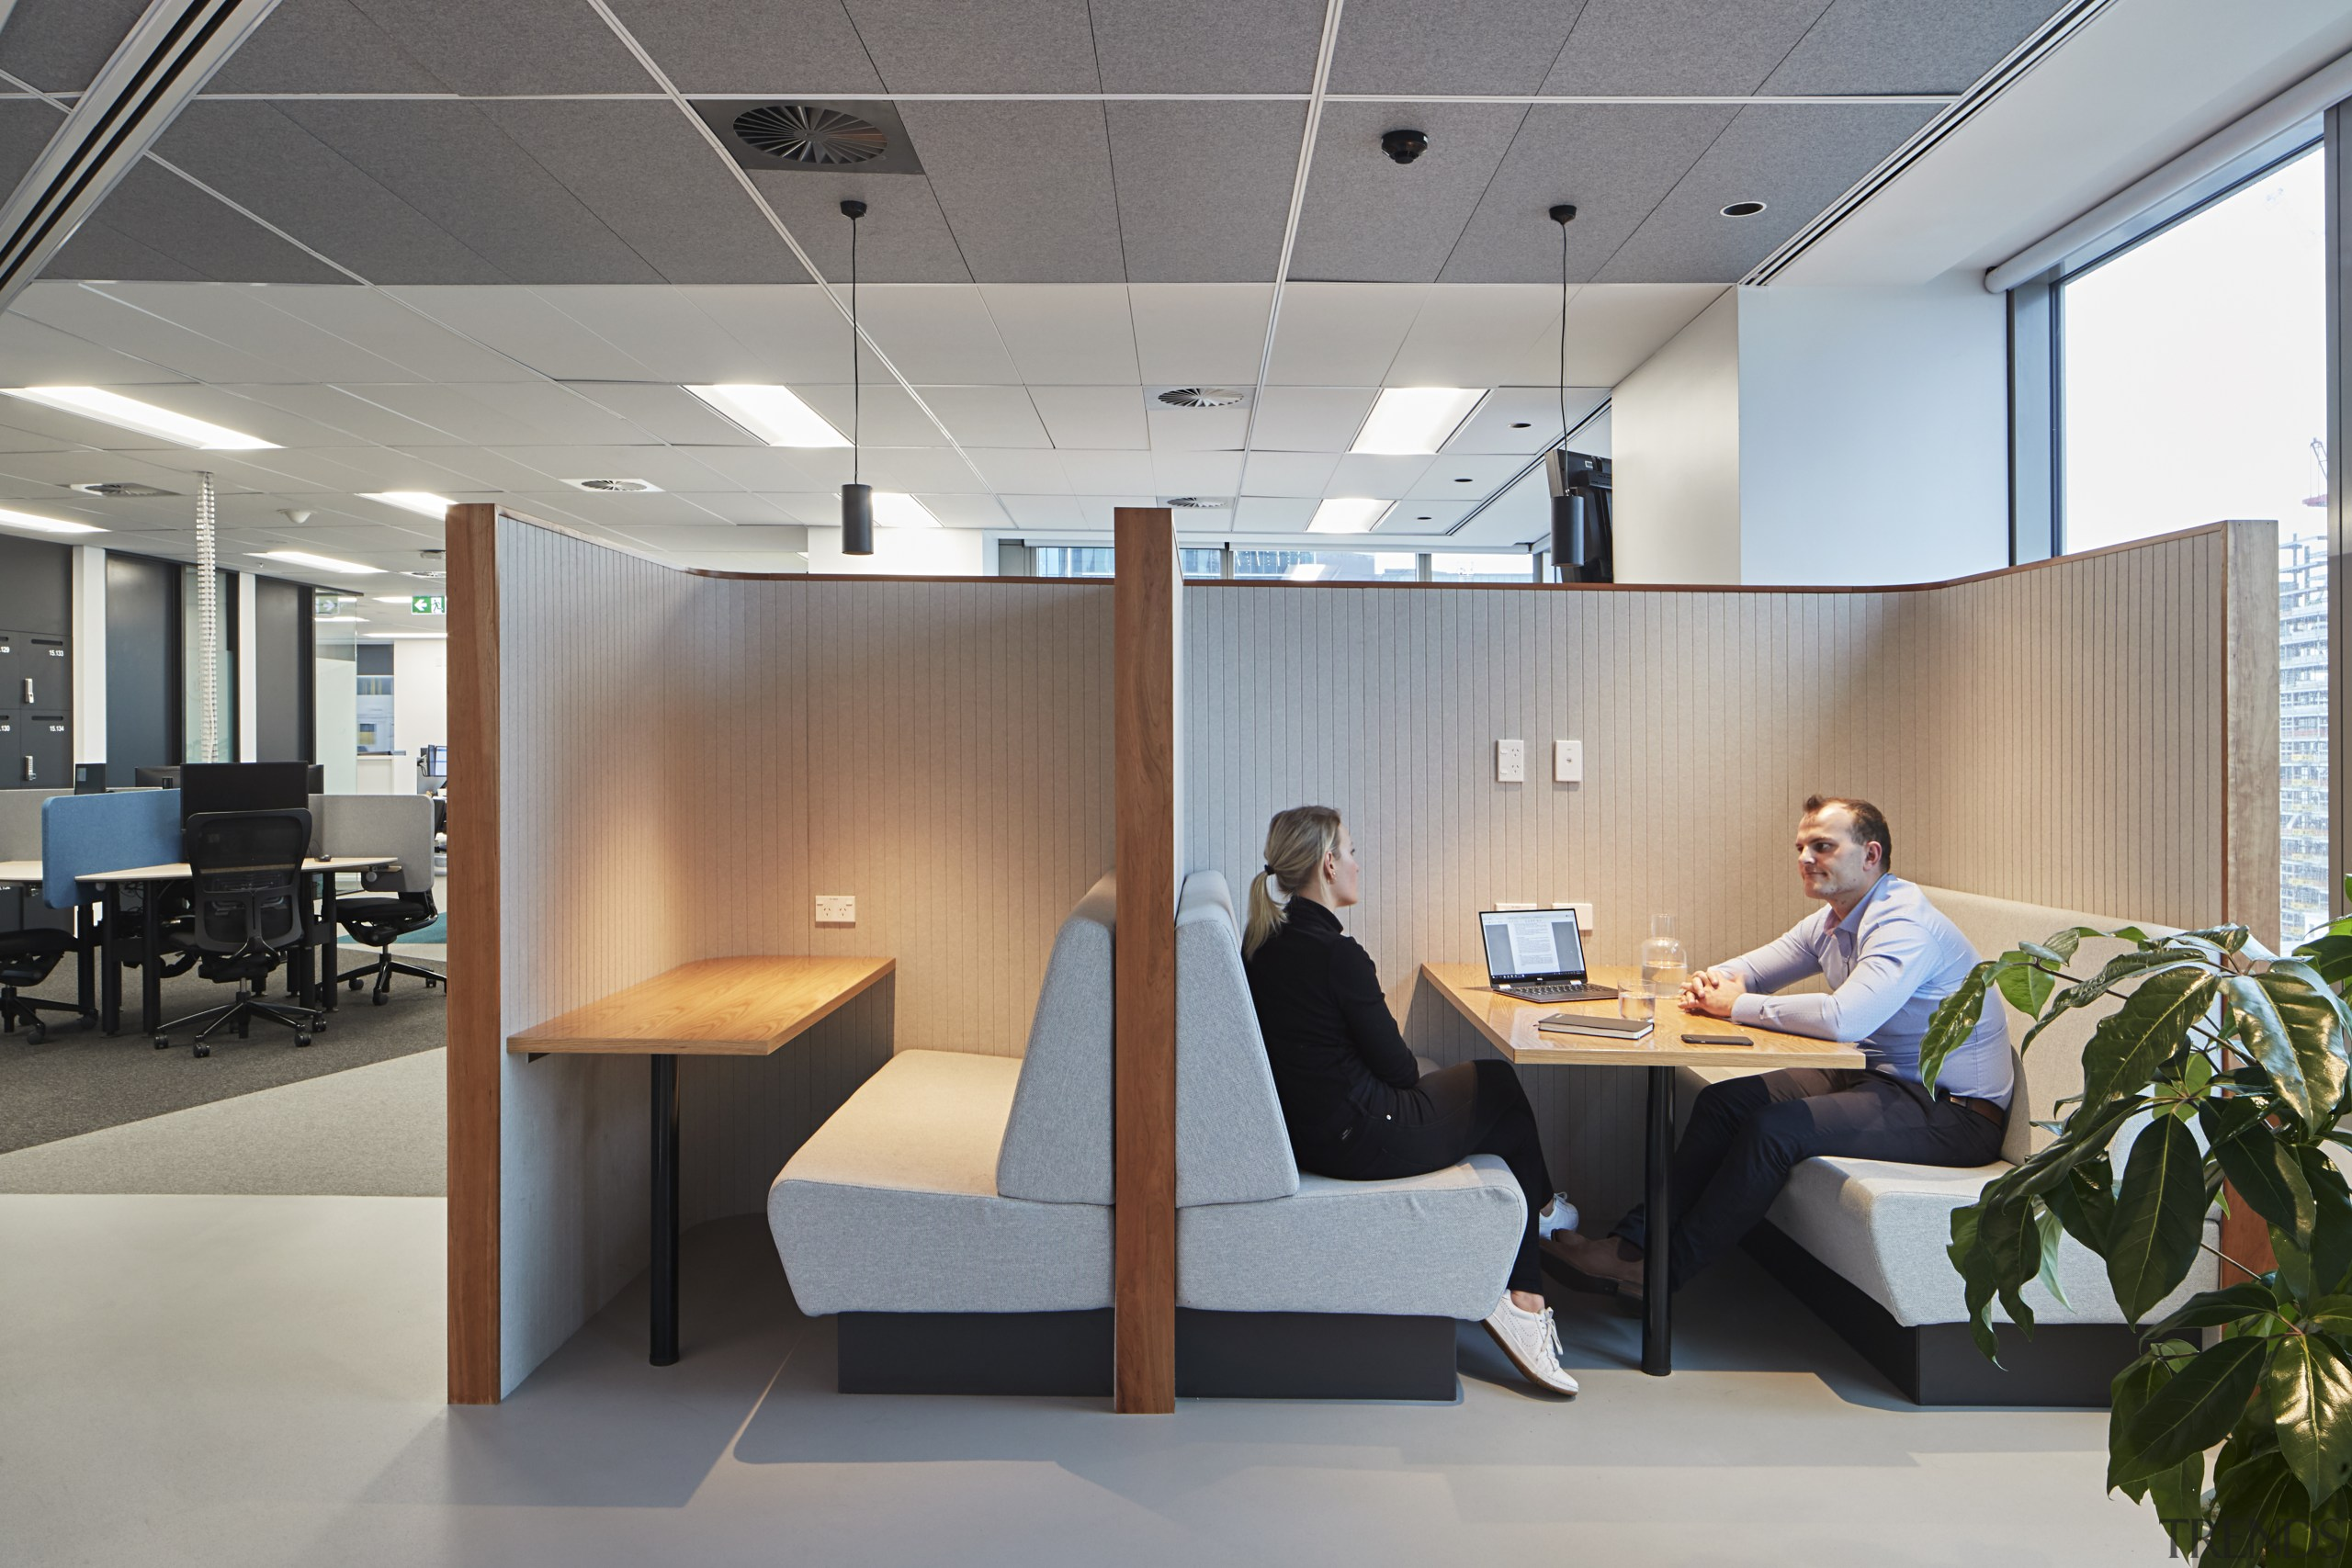 One of the many breakout spaces in the ceiling, furniture, interior design, office, gray